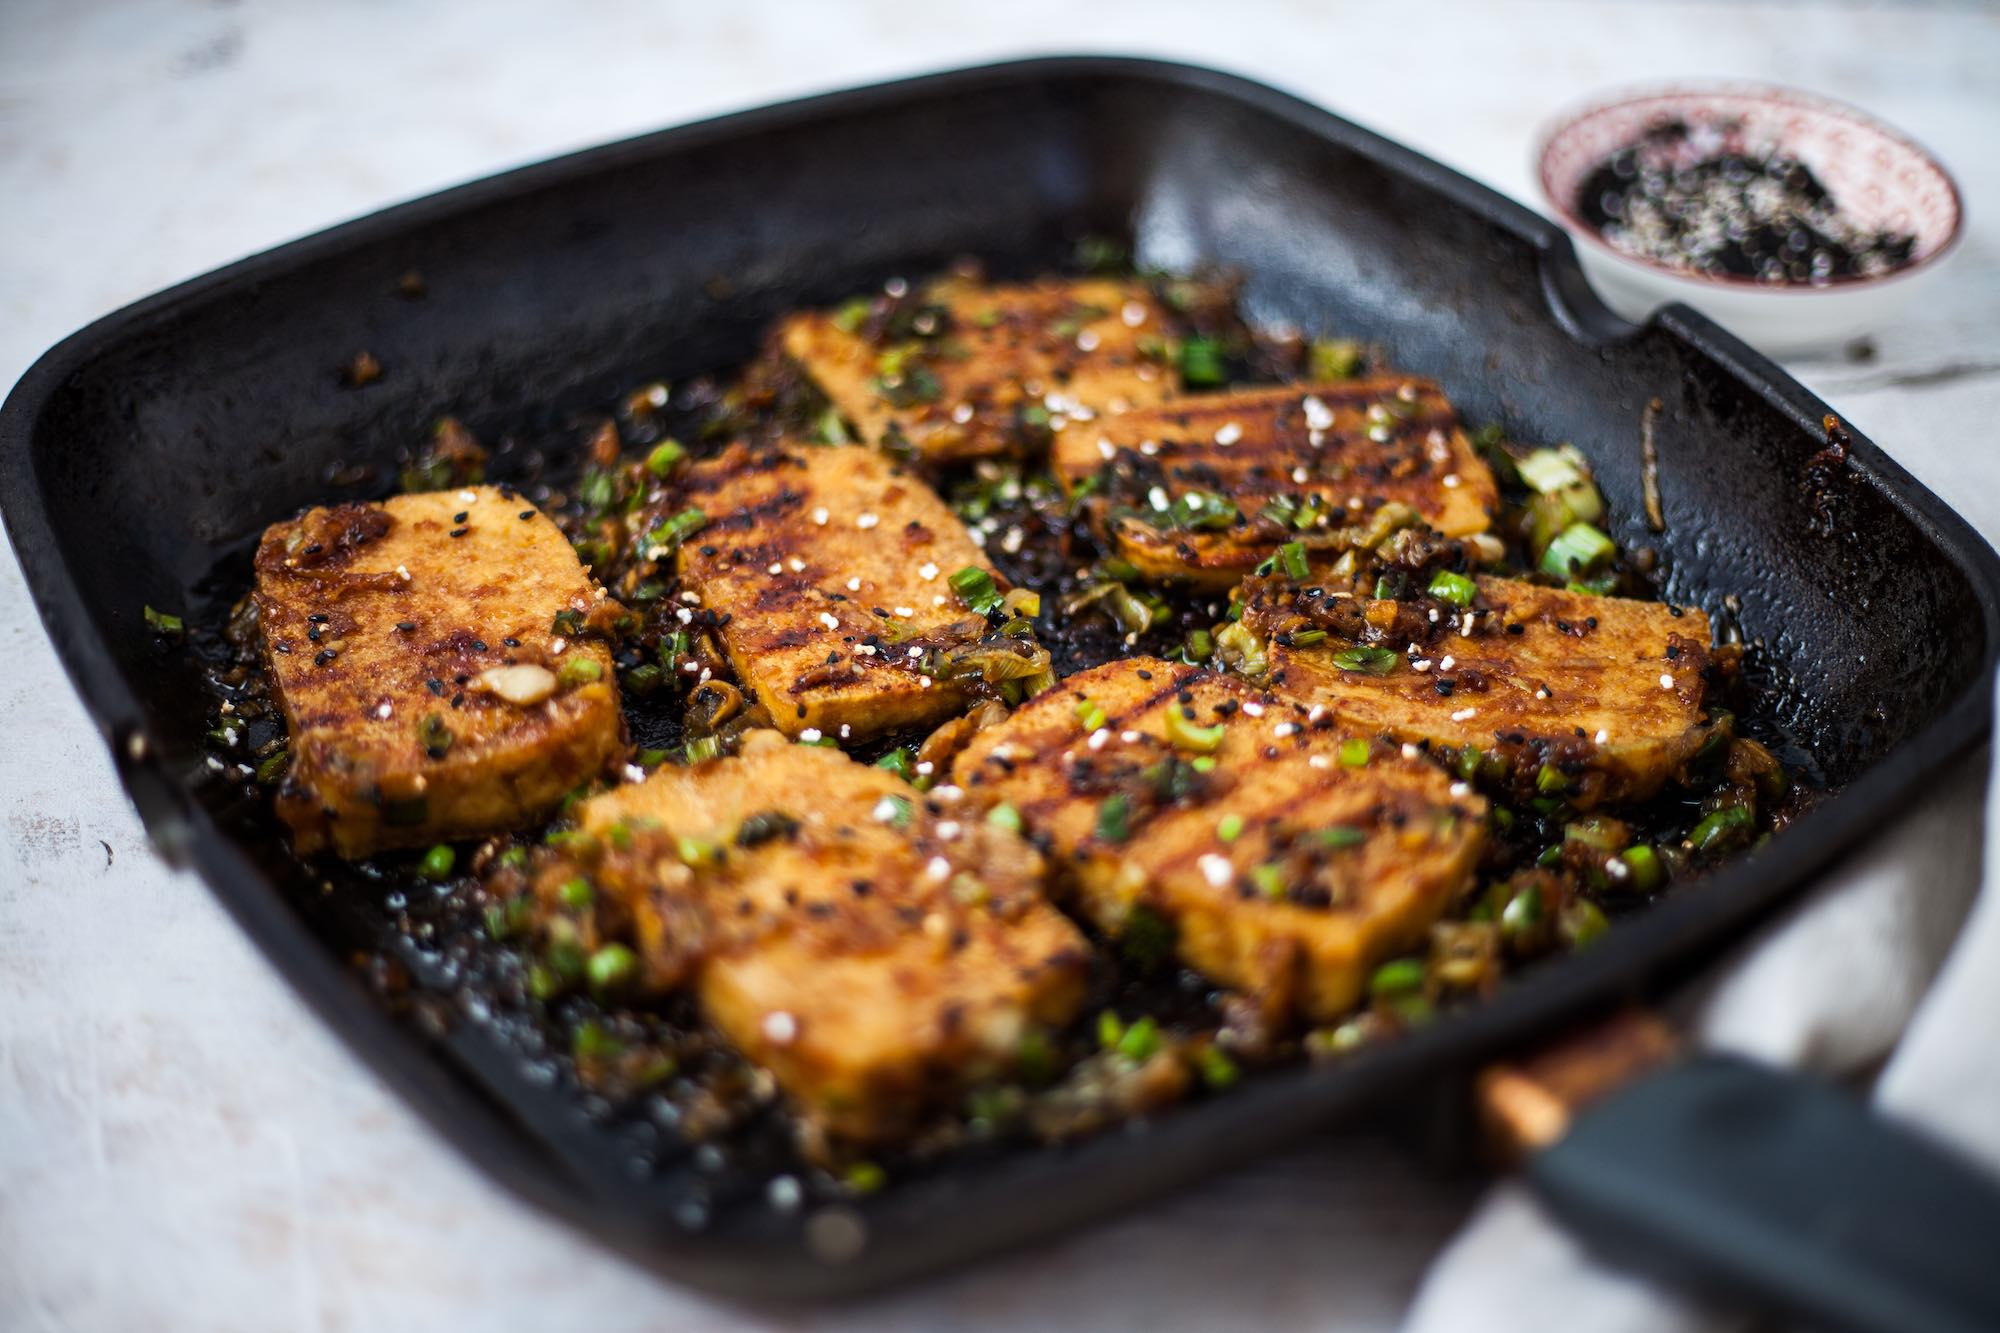 Soy ginger pear braised tofu recipe